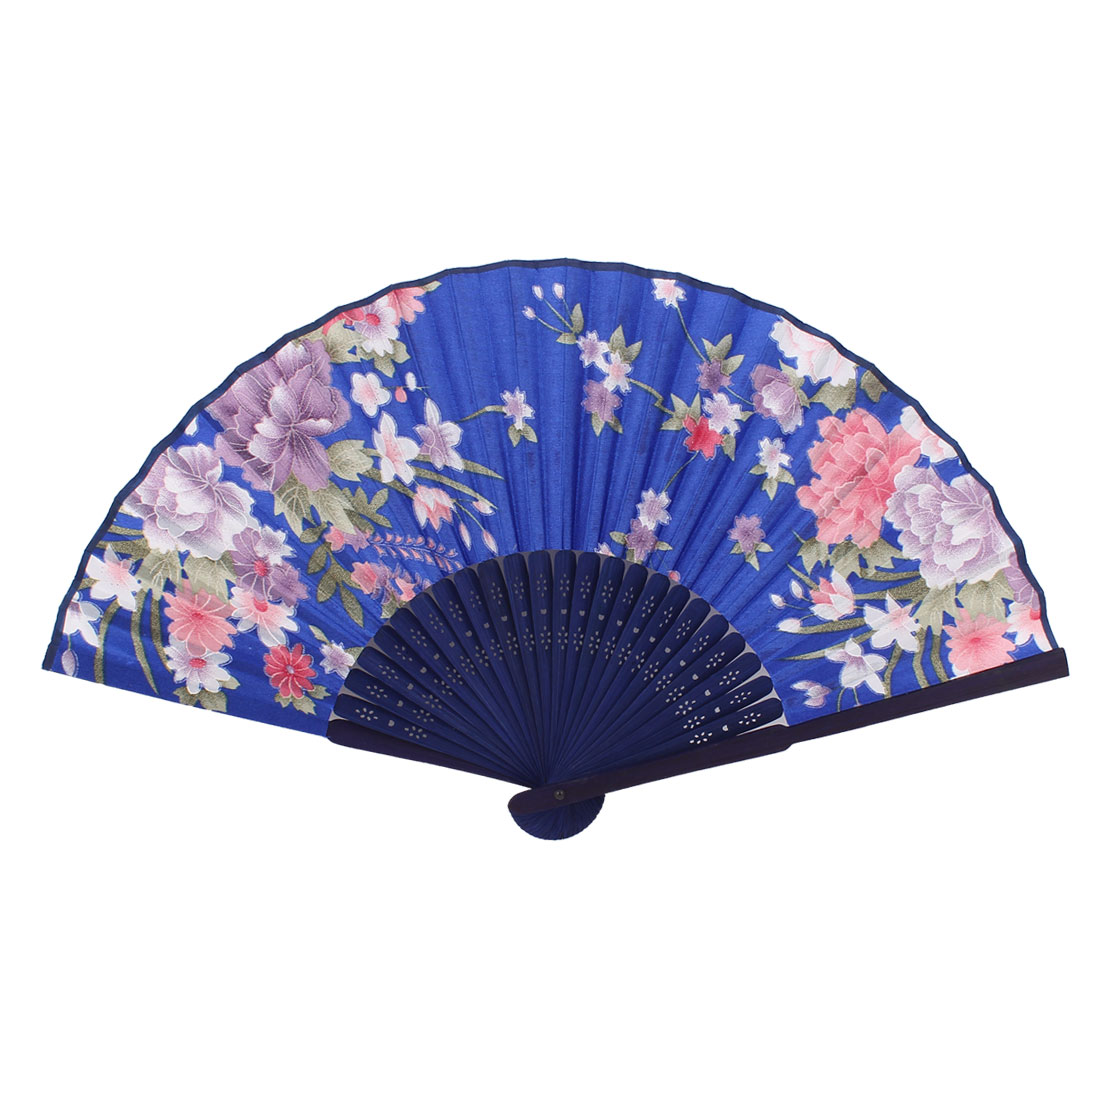 Home Bamboo Hollow Out Handle Mini Flower Print Handheld Hand Fan Dark Blue